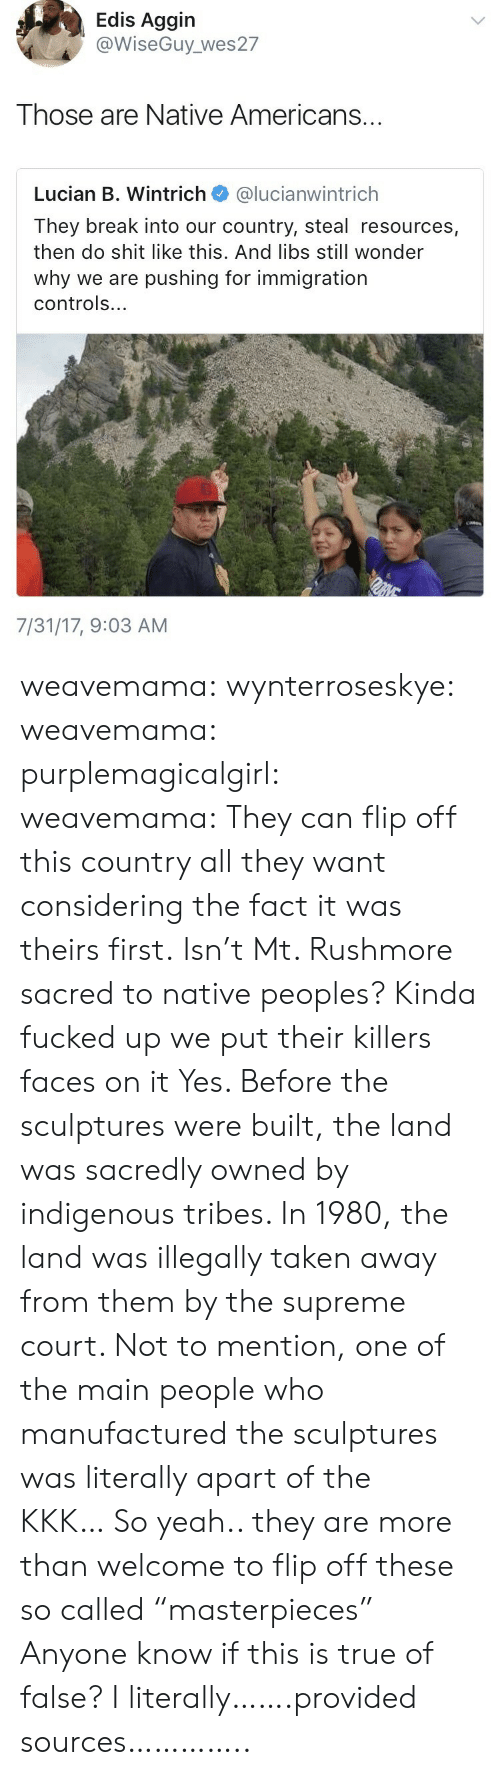 "indigenous: Edis Aggin  @WiseGuy_ wes27  Those are Native Americans...  Lucian B. Wintrich @lucianwintrich  They break into our country, steal resources,  then do shit like this. And libs still wonder  why we are pushing for immigration  controls...  7/31/17, 9:03 AM weavemama: wynterroseskye:   weavemama:  purplemagicalgirl:  weavemama: They can flip off this country all they want considering the fact it was theirs first. Isn't Mt. Rushmore sacred to native peoples? Kinda fucked up we put their killers faces on it  Yes. Before the sculptures were built, the land was sacredly owned by indigenous tribes. In 1980, the land was illegally taken away from them by the supreme court. Not to mention, one of the main people who manufactured the sculptures was literally apart of the KKK… So yeah.. they are more than welcome to flip off these so called ""masterpieces""    Anyone know if this is true of false?   I literally…….provided sources………….."